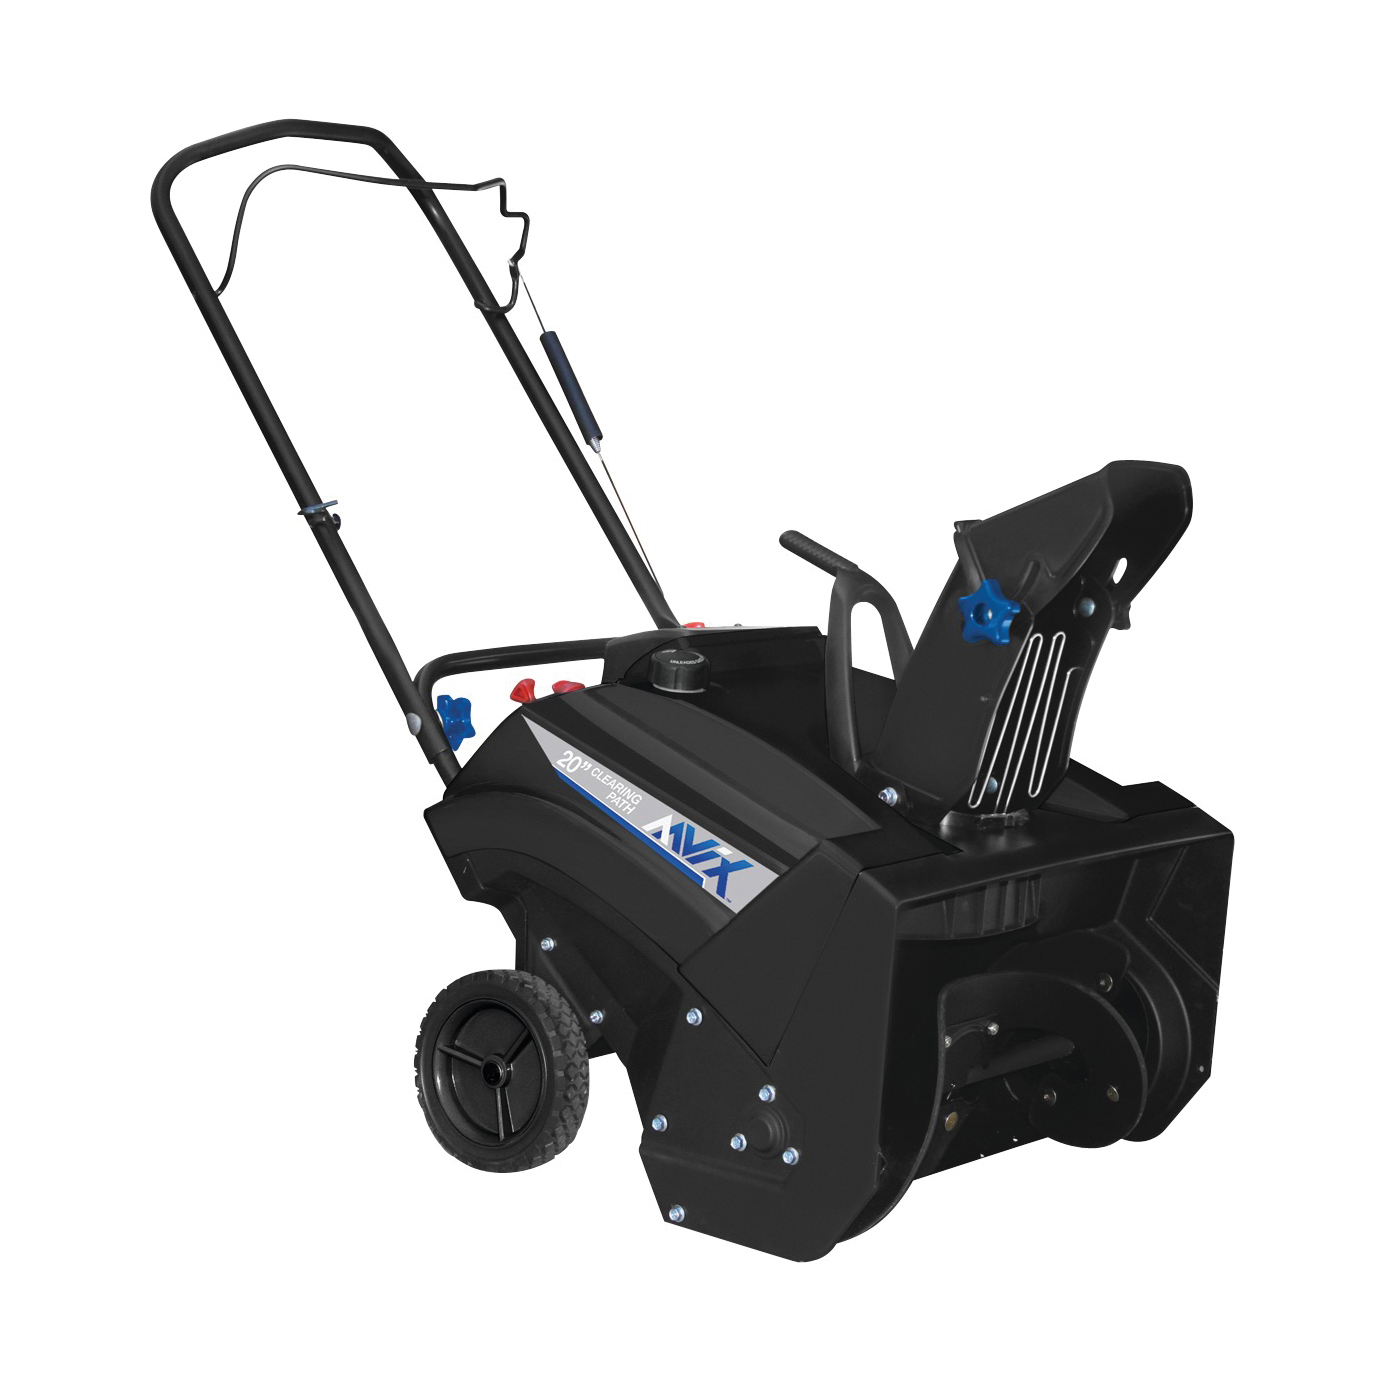 Picture of PULSAR AGT1420 Snow Thrower, 1 -Stage, 20 in W Cleaning